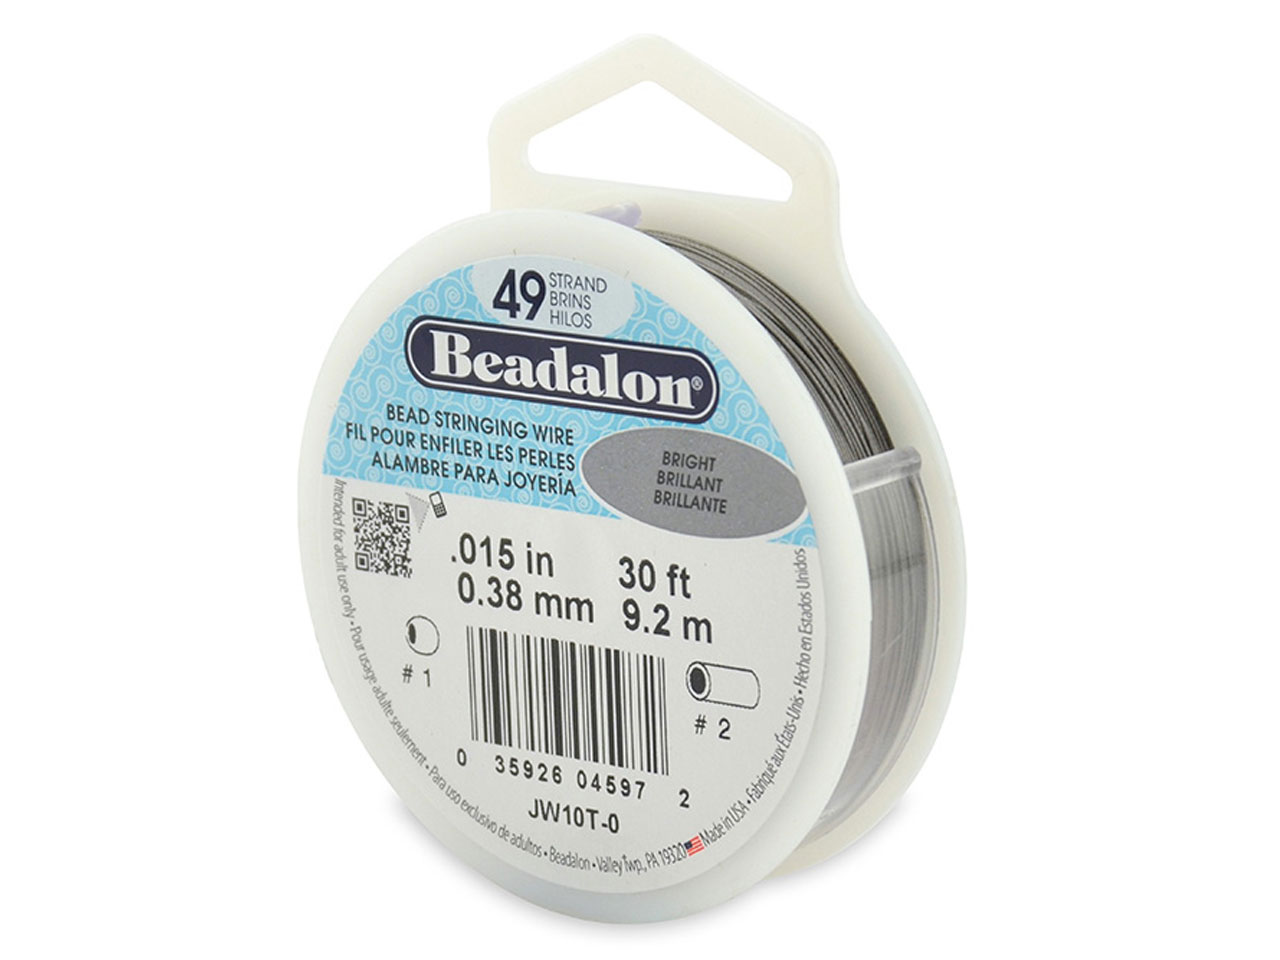 Beadalon 49 Strand Bright 0.38mm X 9.2m Wire